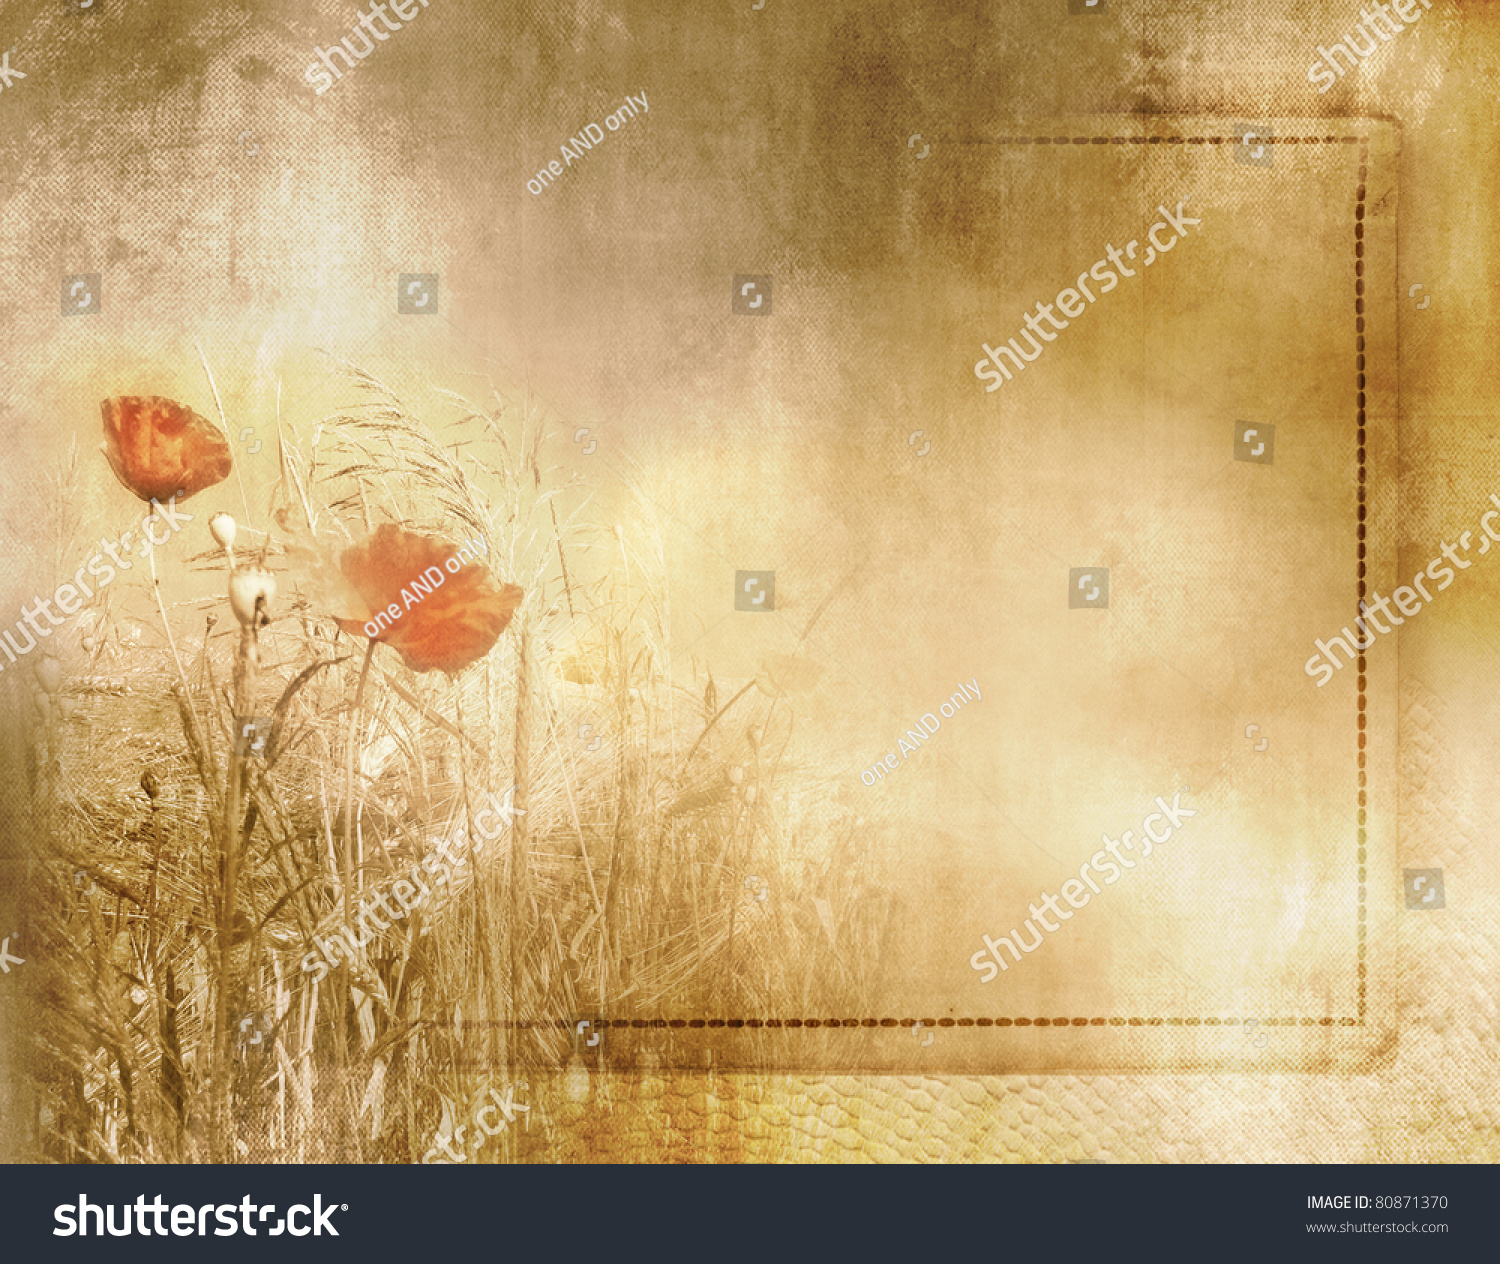 vintage poppy field background on old paper texture with